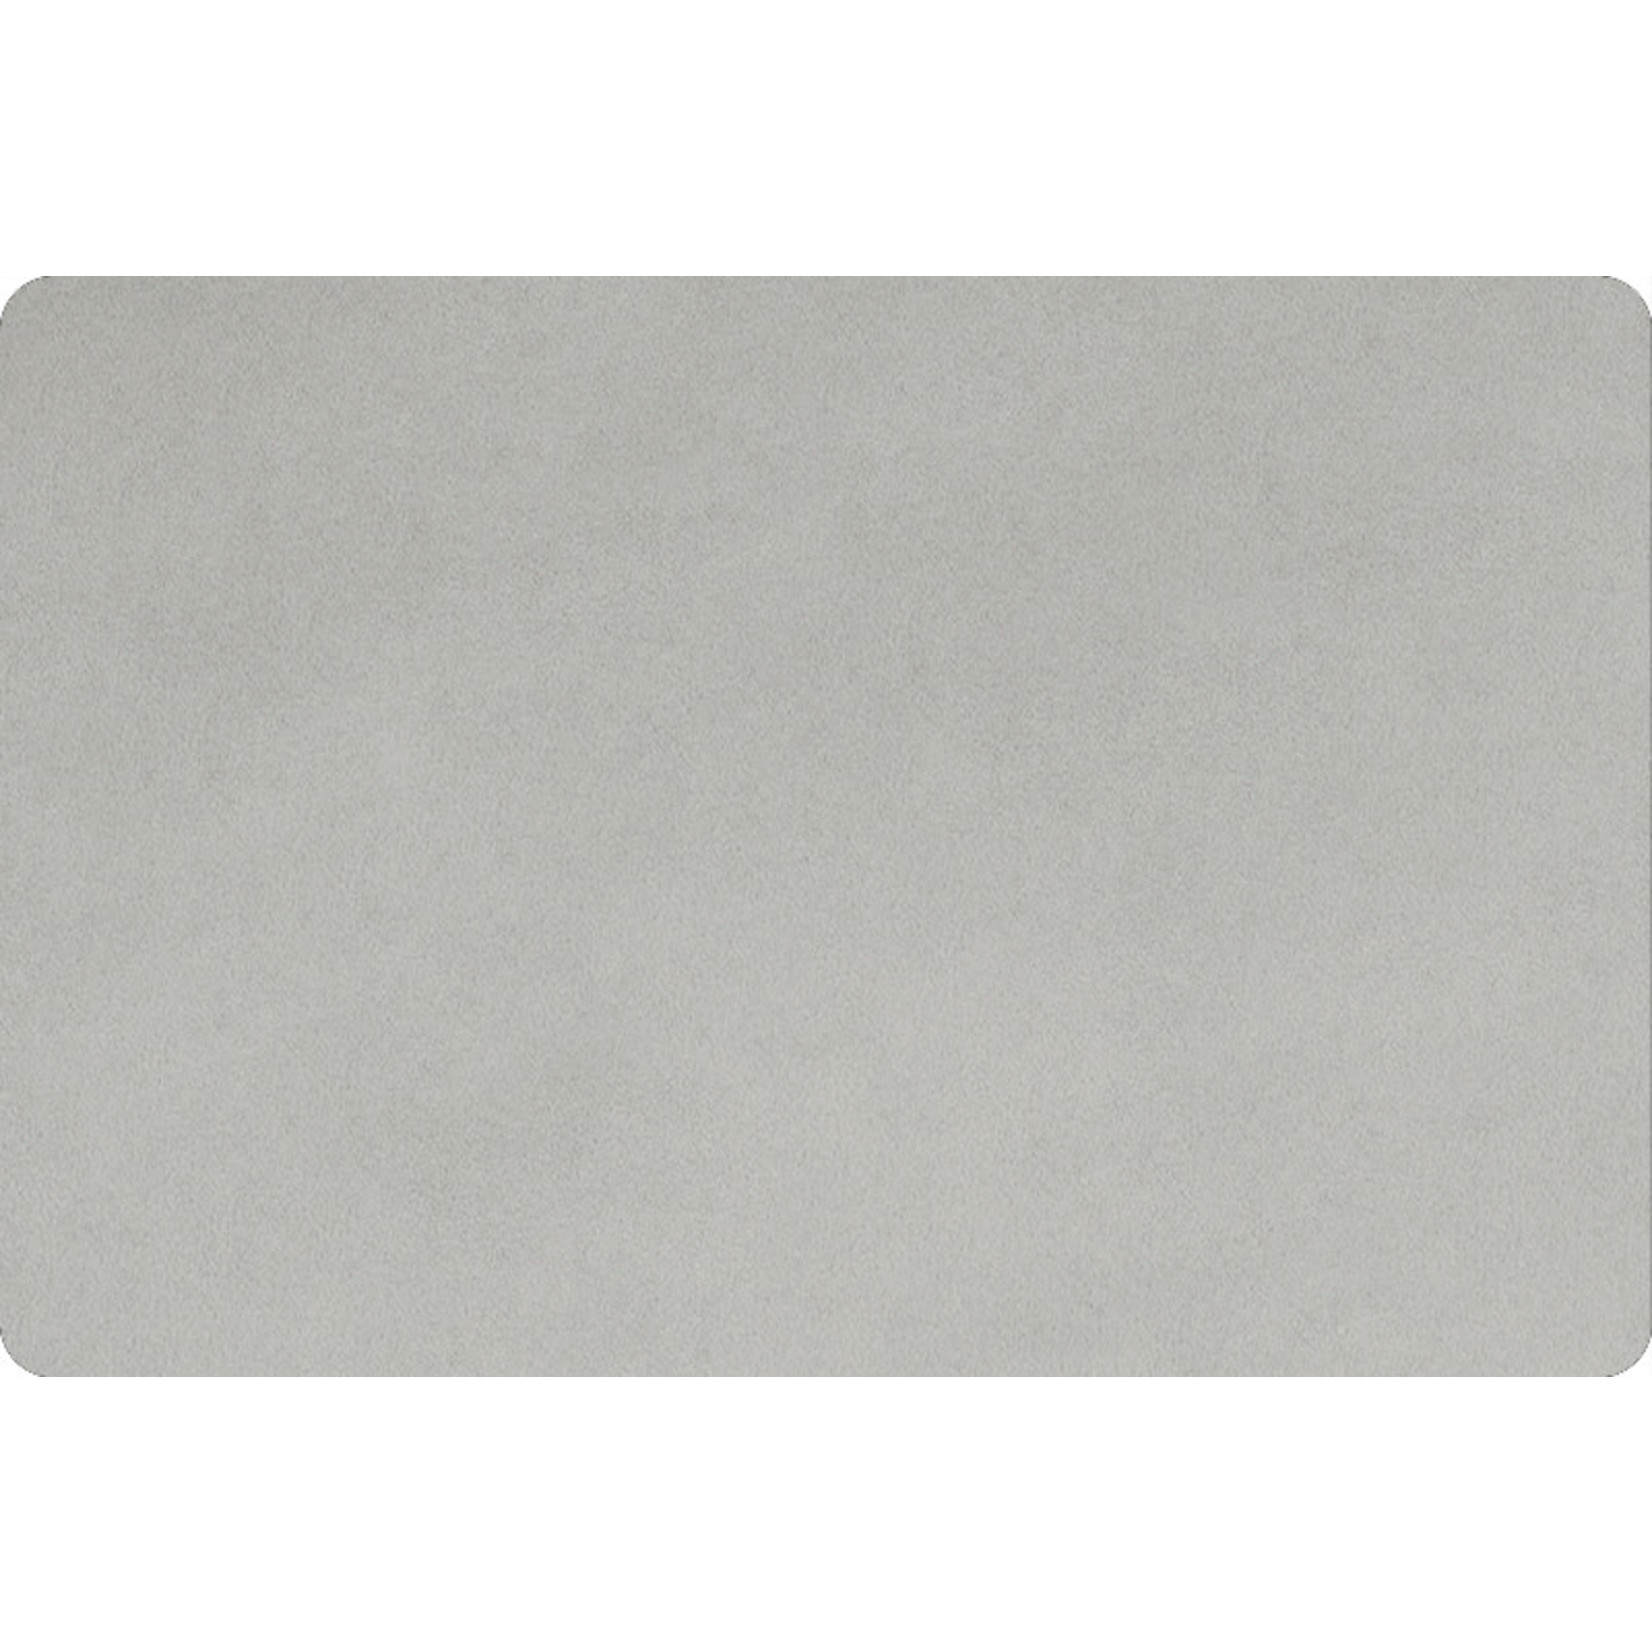 """Shannon Fabrics Minky, Extra Wide Solid Cuddle3, 90"""" Silver, (by the inch)"""